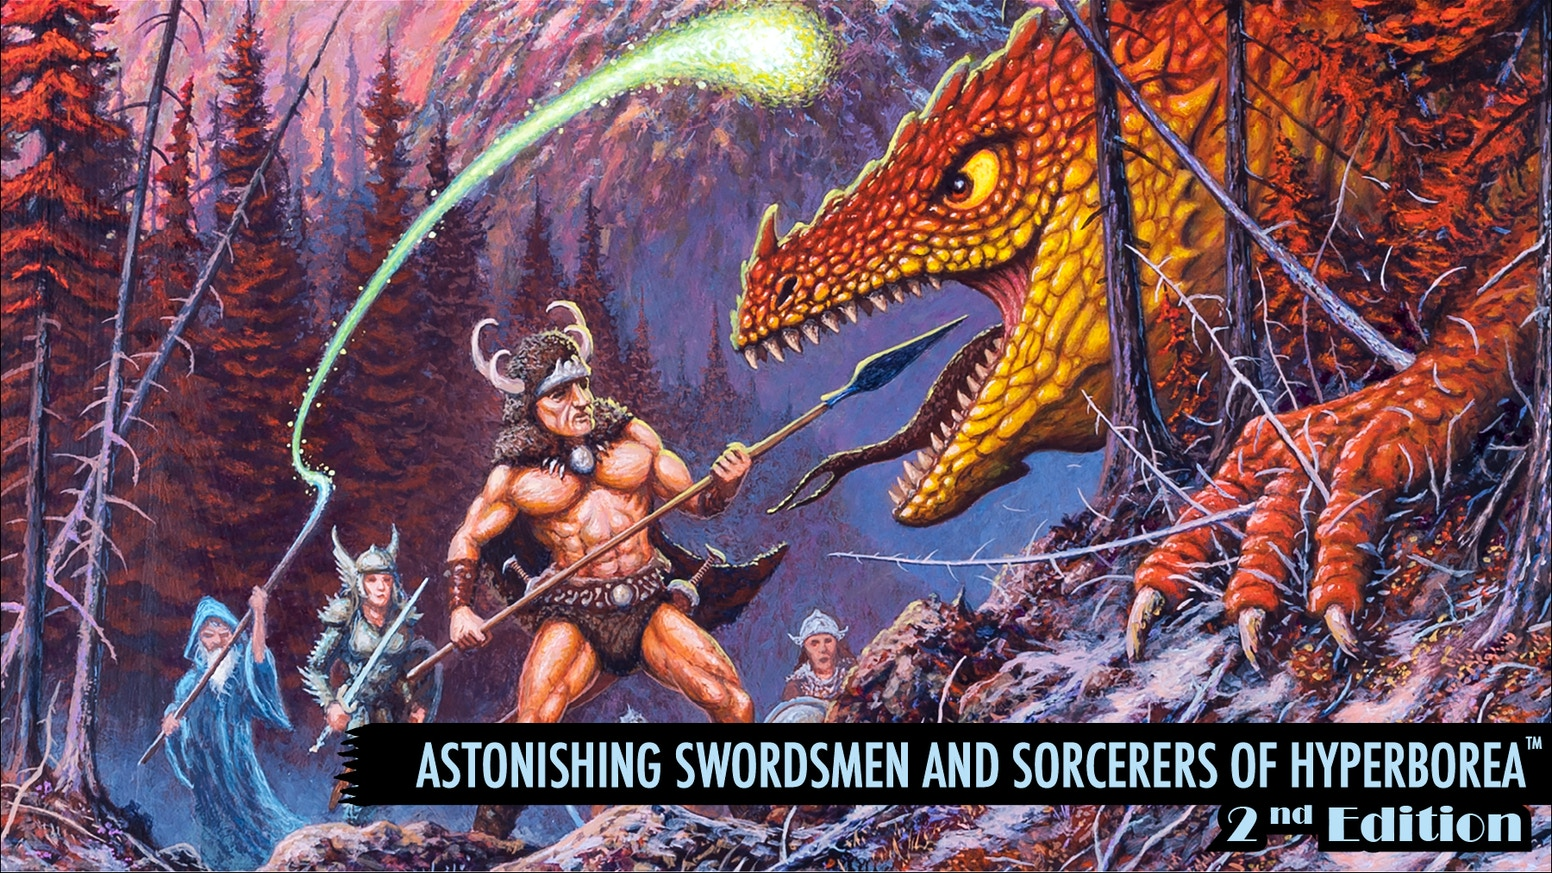 The premier sword-and-sorcery RPG now in 2E hardback format! Inspired by Robert E. Howard, H.P. Lovecraft, and Clark Ashton Smith. The Kickstarter is finished, but you can preorder AS&SH 2E at our website today!